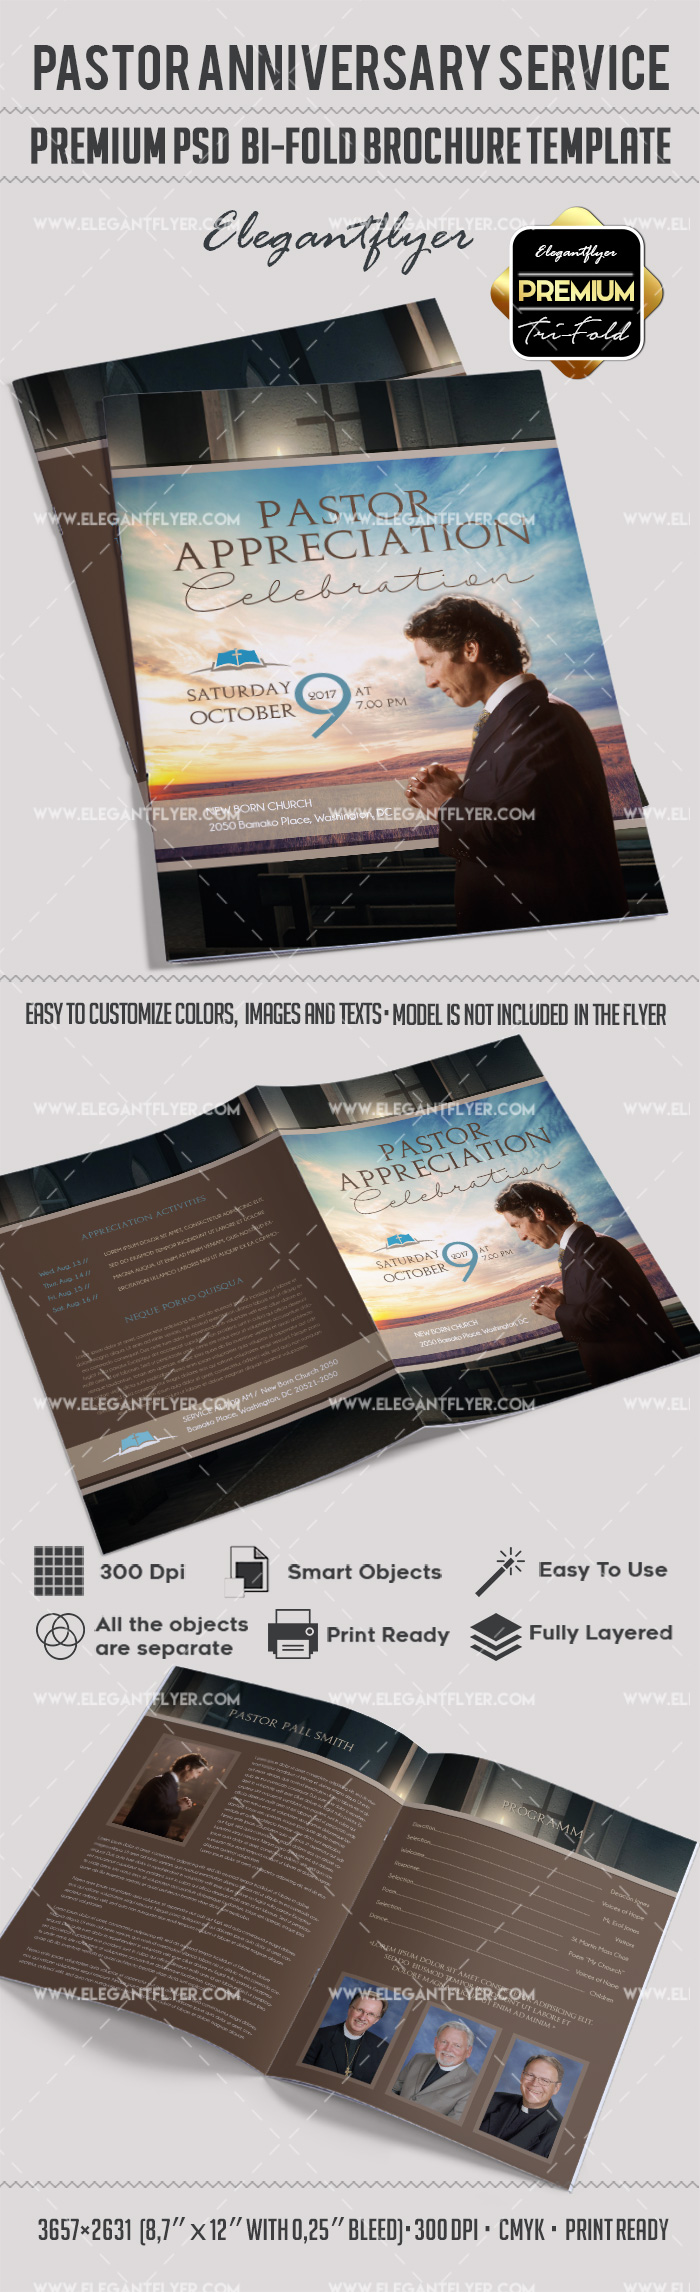 free bi fold brochure templates - pastor appreciation day brochure by elegantflyer